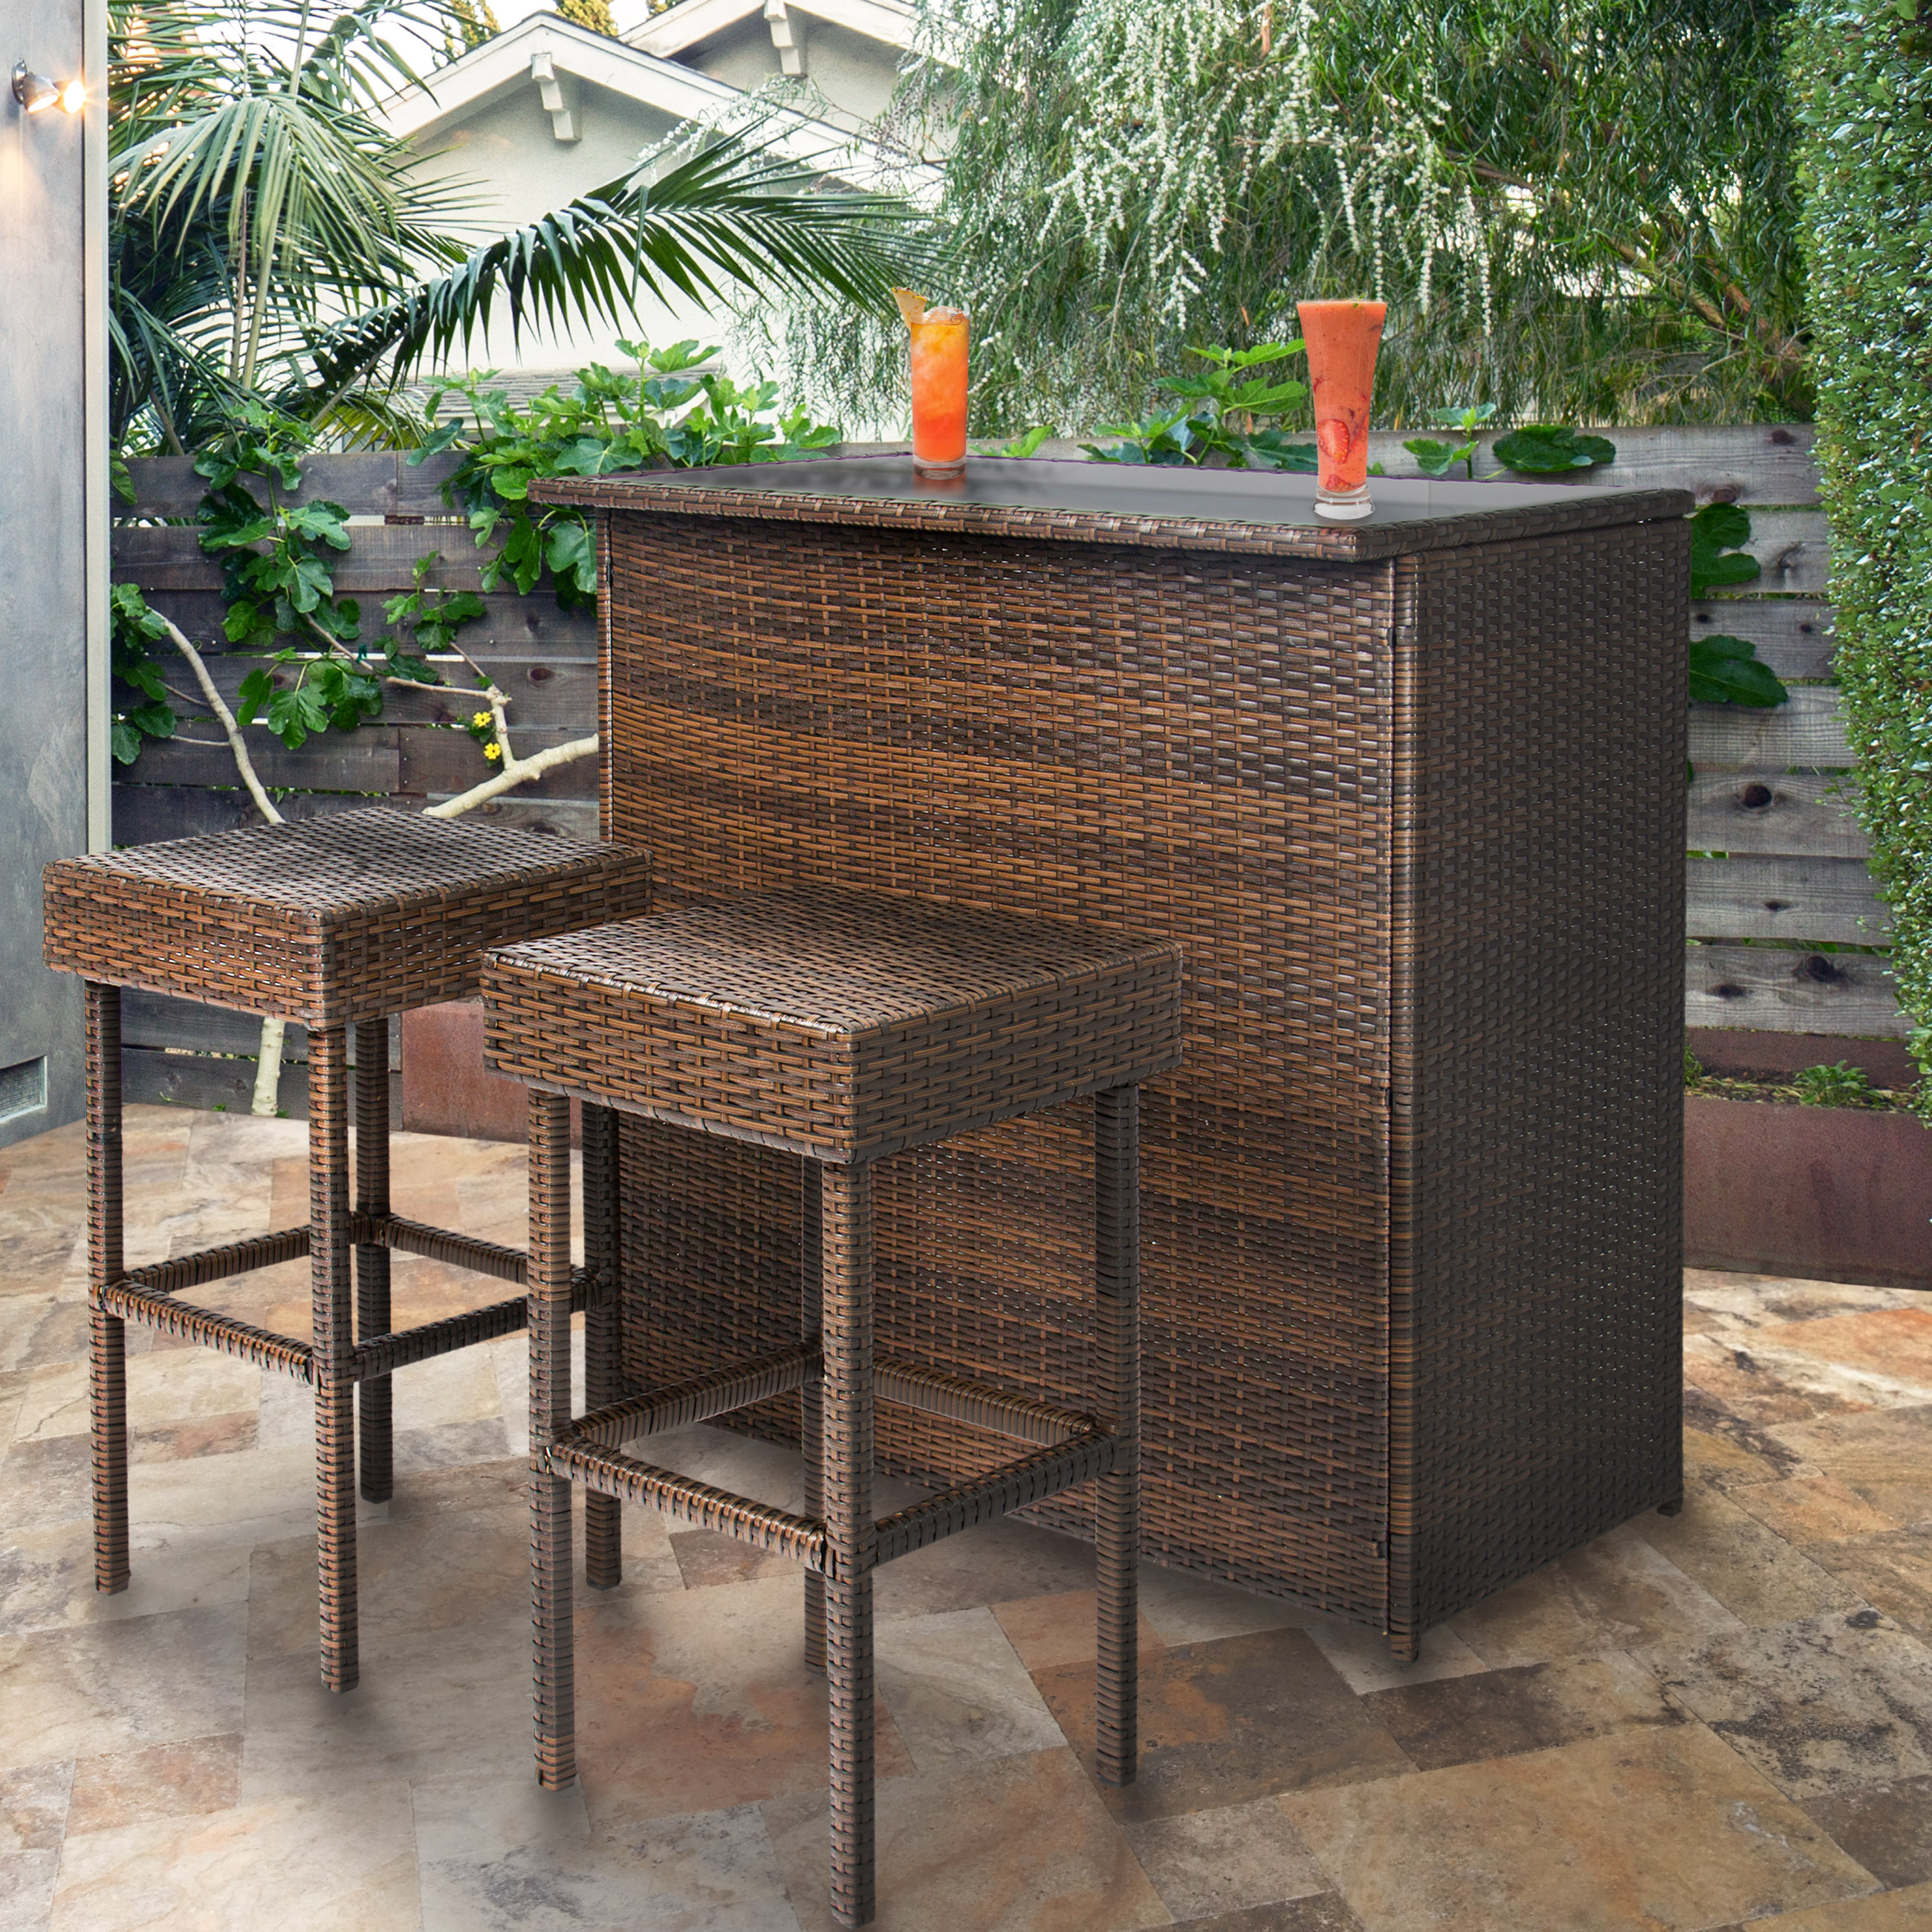 Charming Best Choice Products 3PC Wicker Bar Set Patio Outdoor Backyard Table U0026 2  Stools Rattan Garden Furniture   Walmart.com